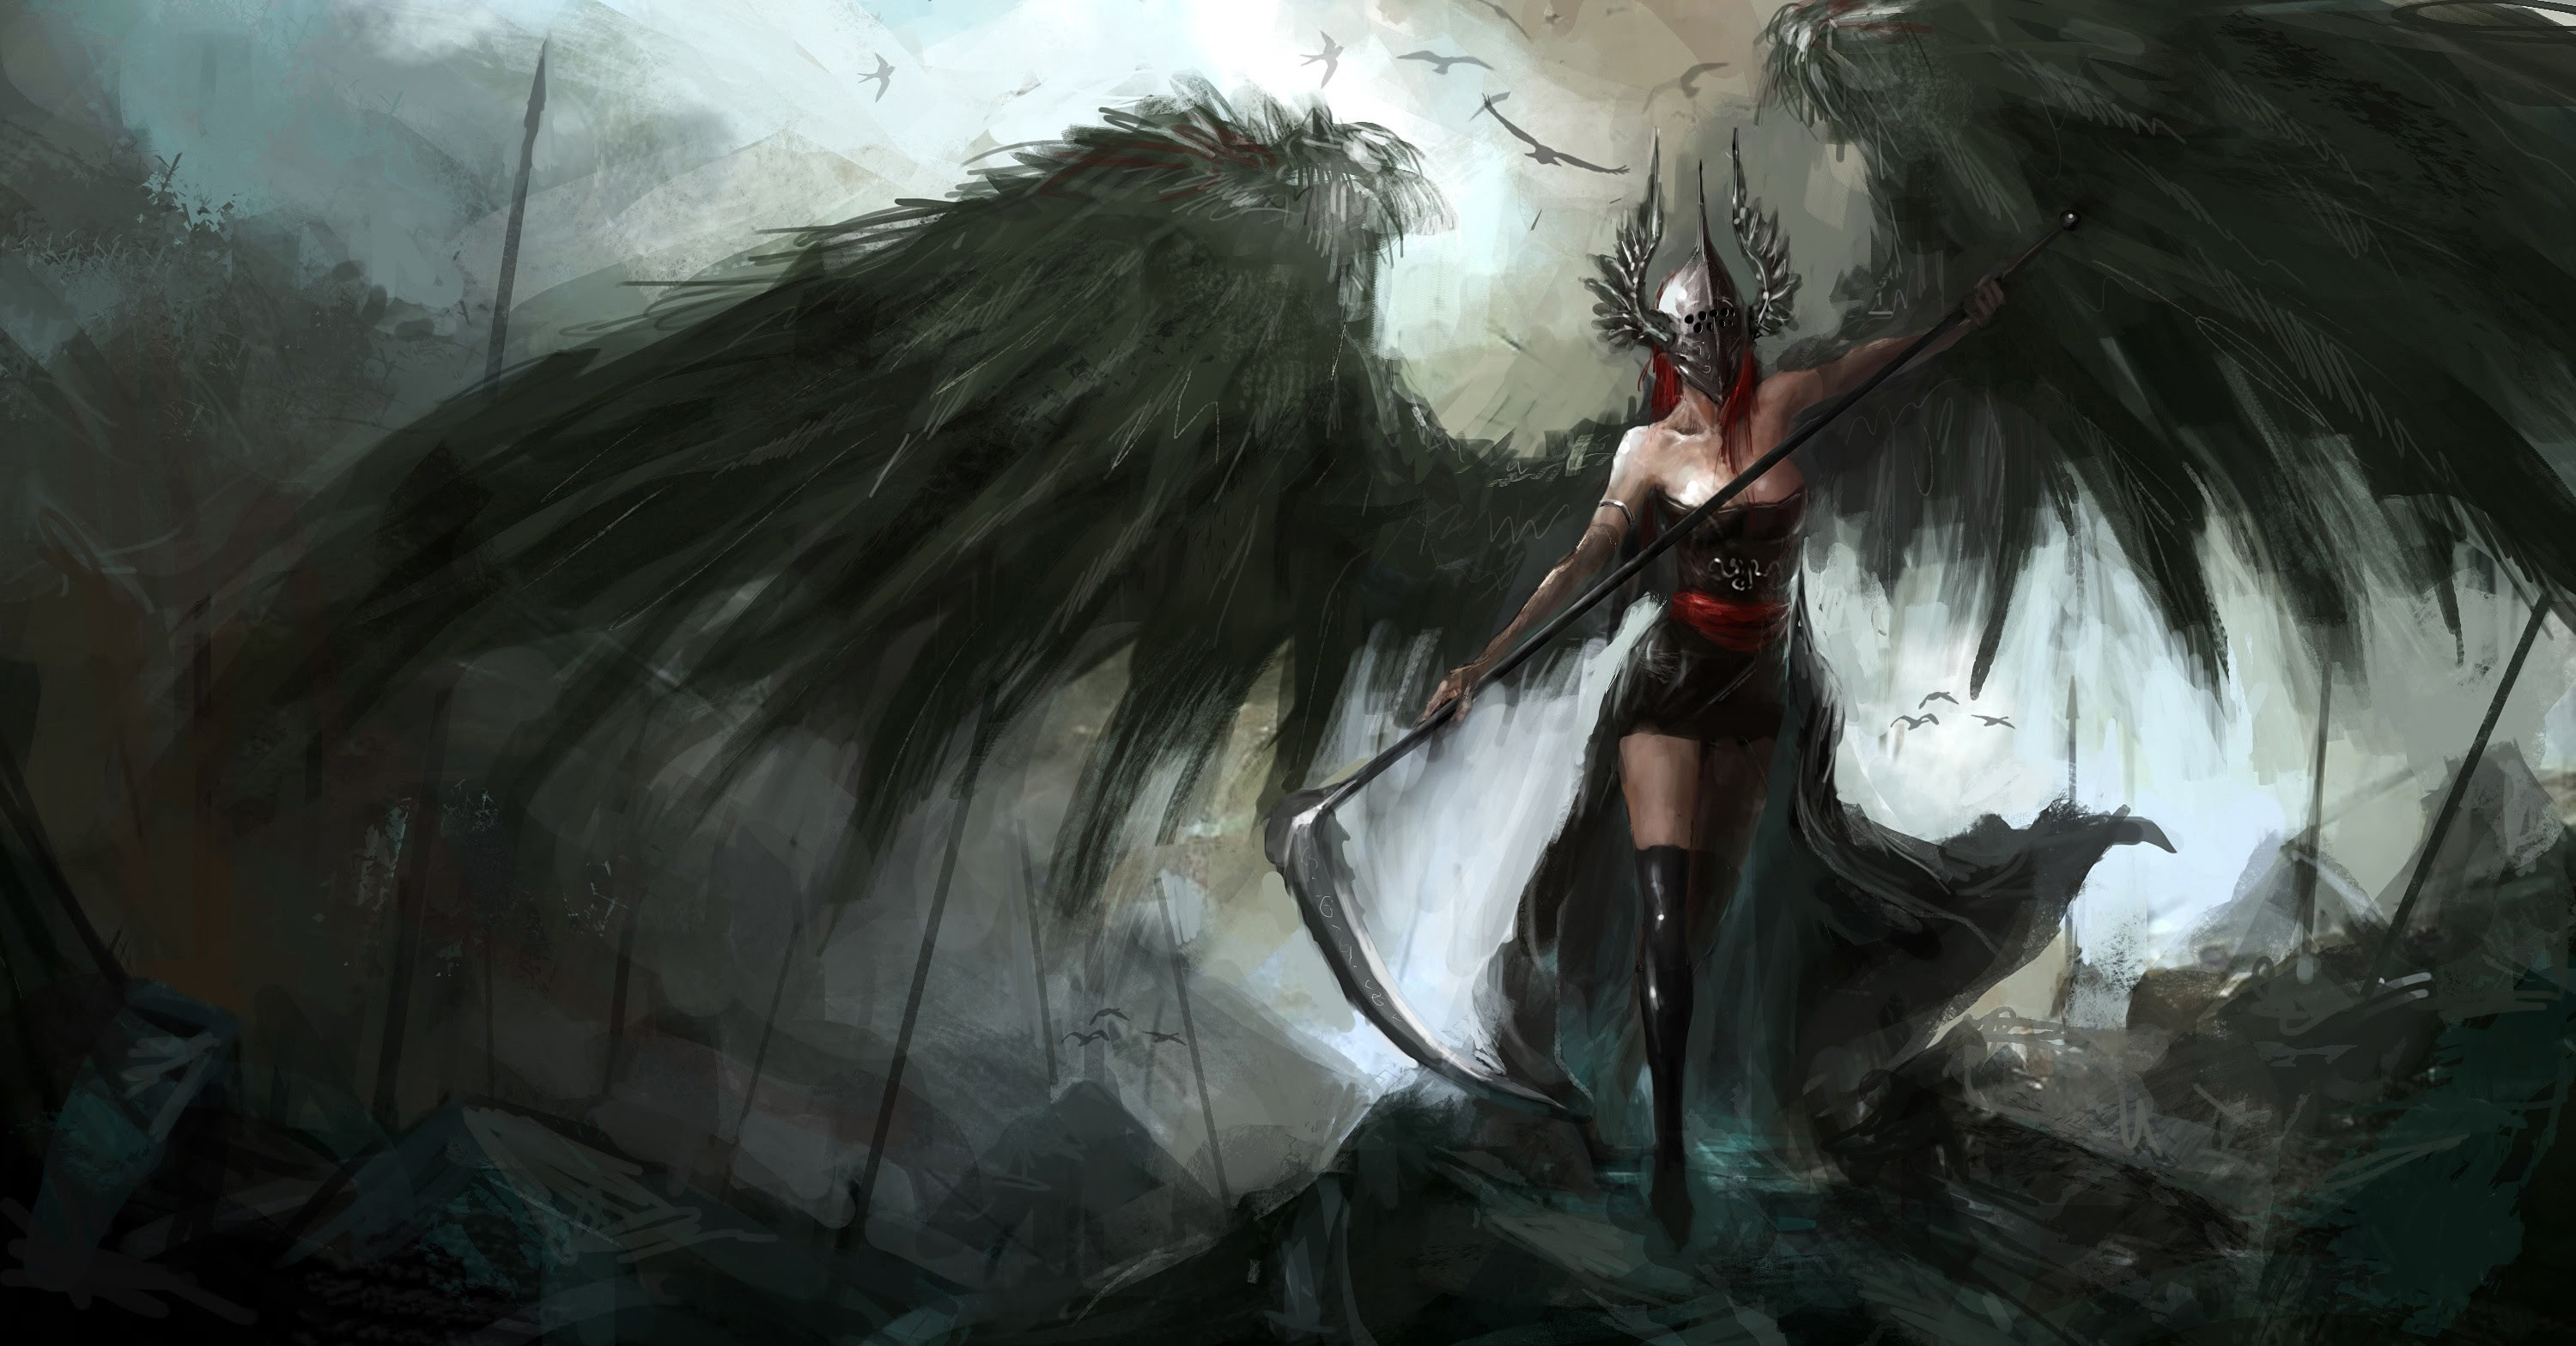 Download Wallpaper Dark Angel Hd Cikimm Com